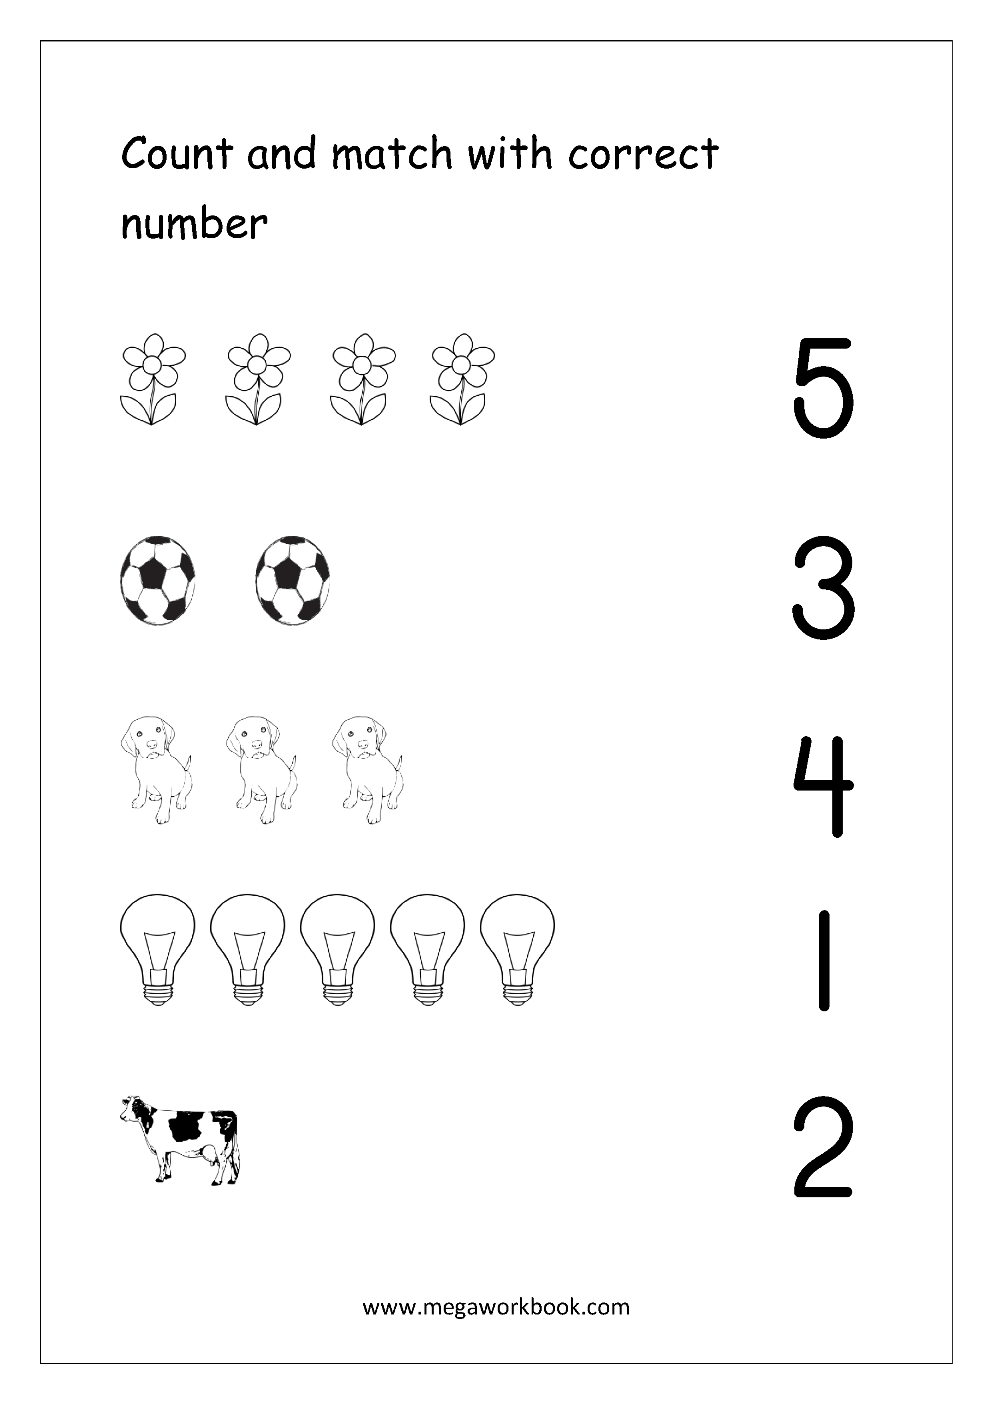 Free Math Worksheets - Number Matching - MegaWorkbook